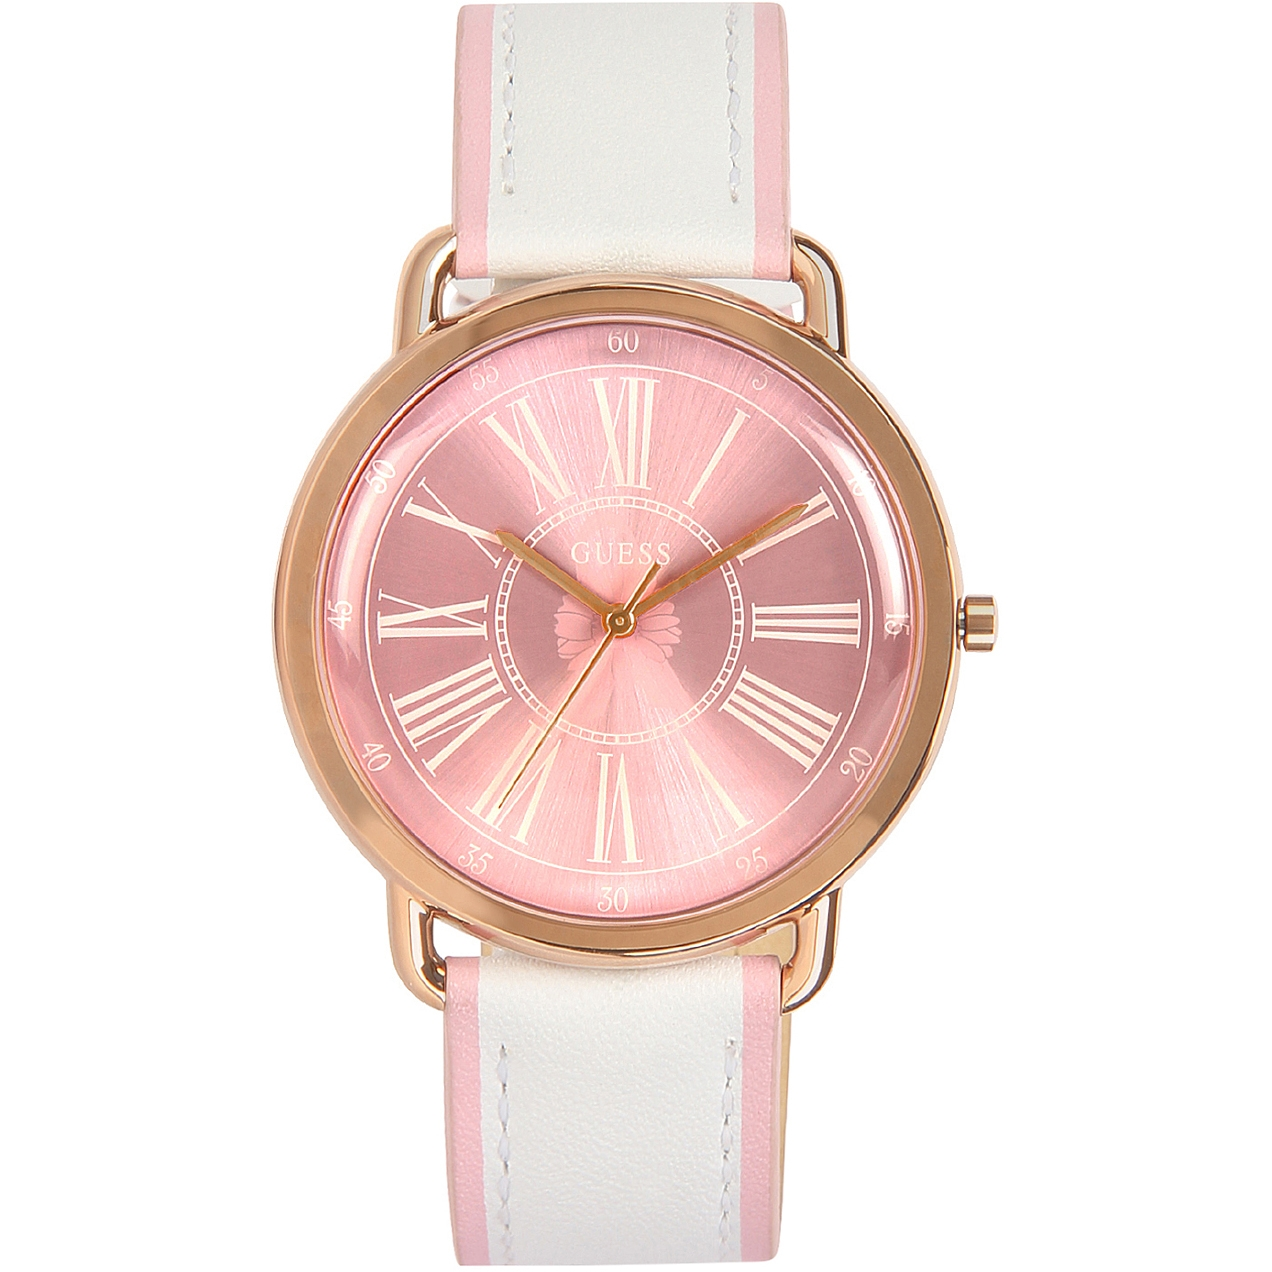 Leather Strap Rose Gold Watch Guess Sparkling Pink Watch W0032l8